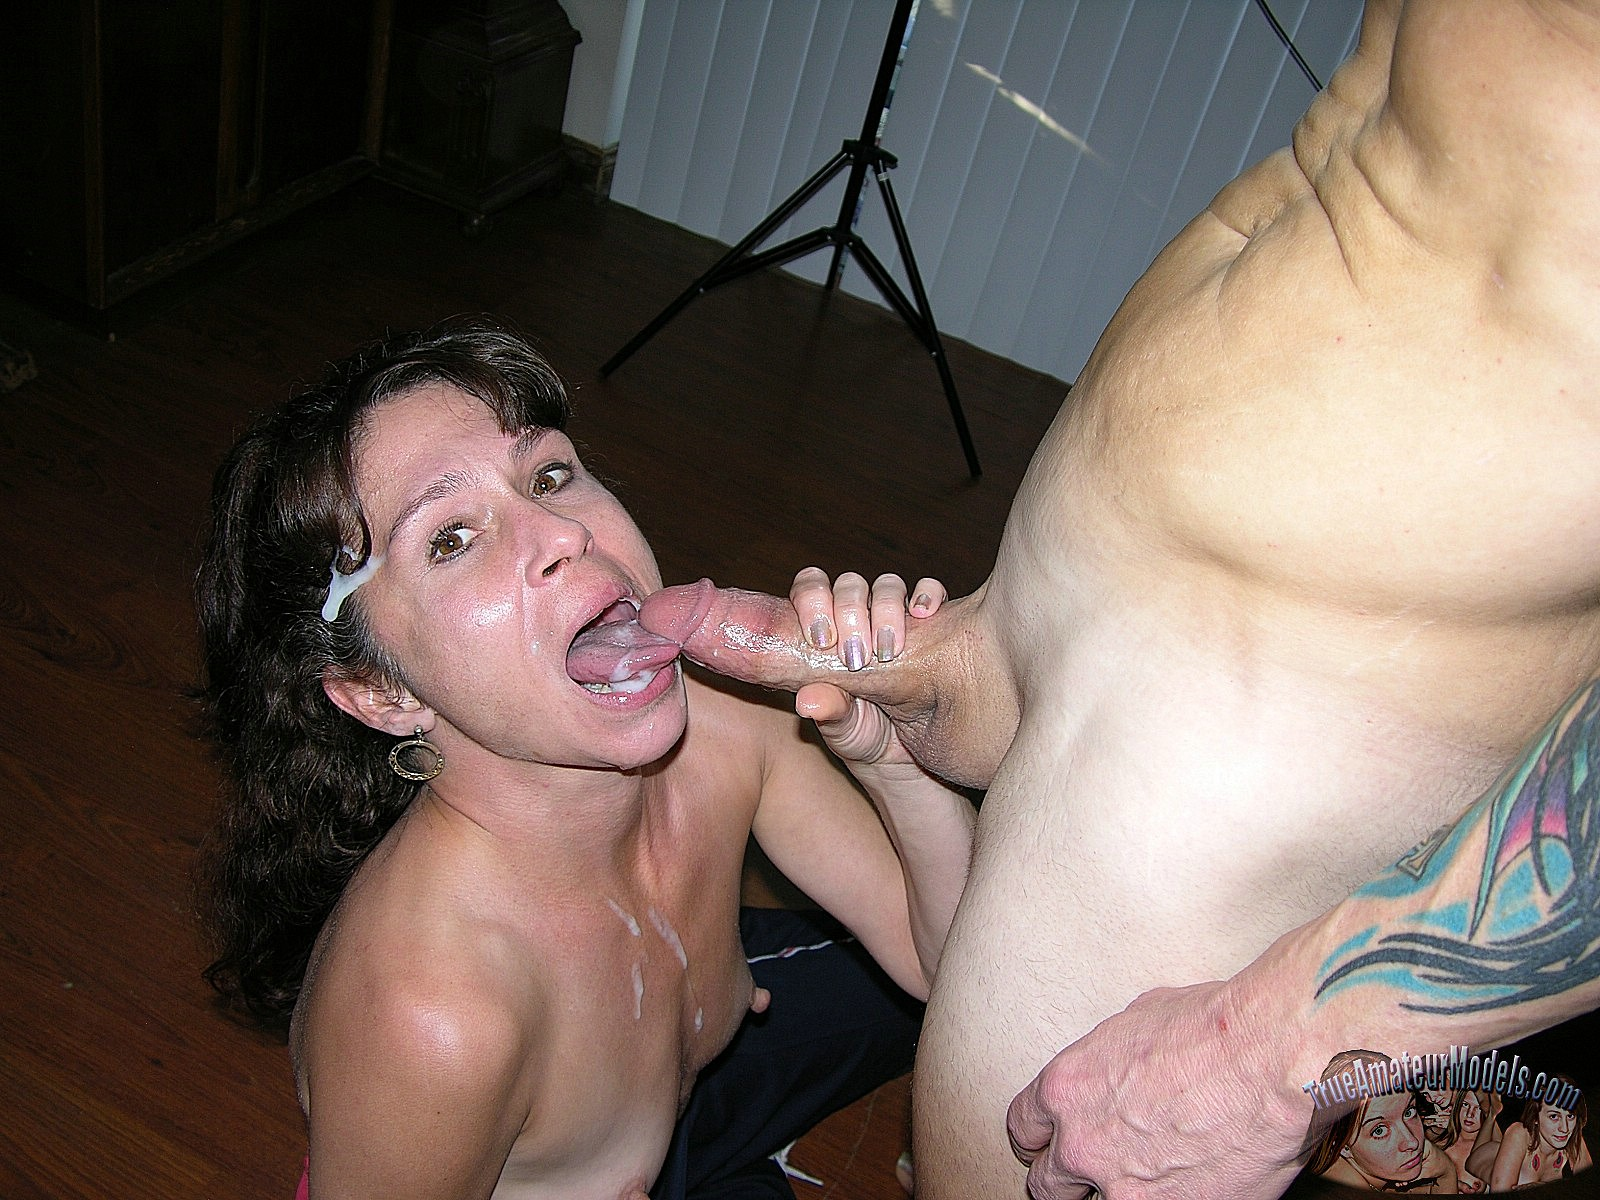 Amateur Blowjob With Swallow - Free